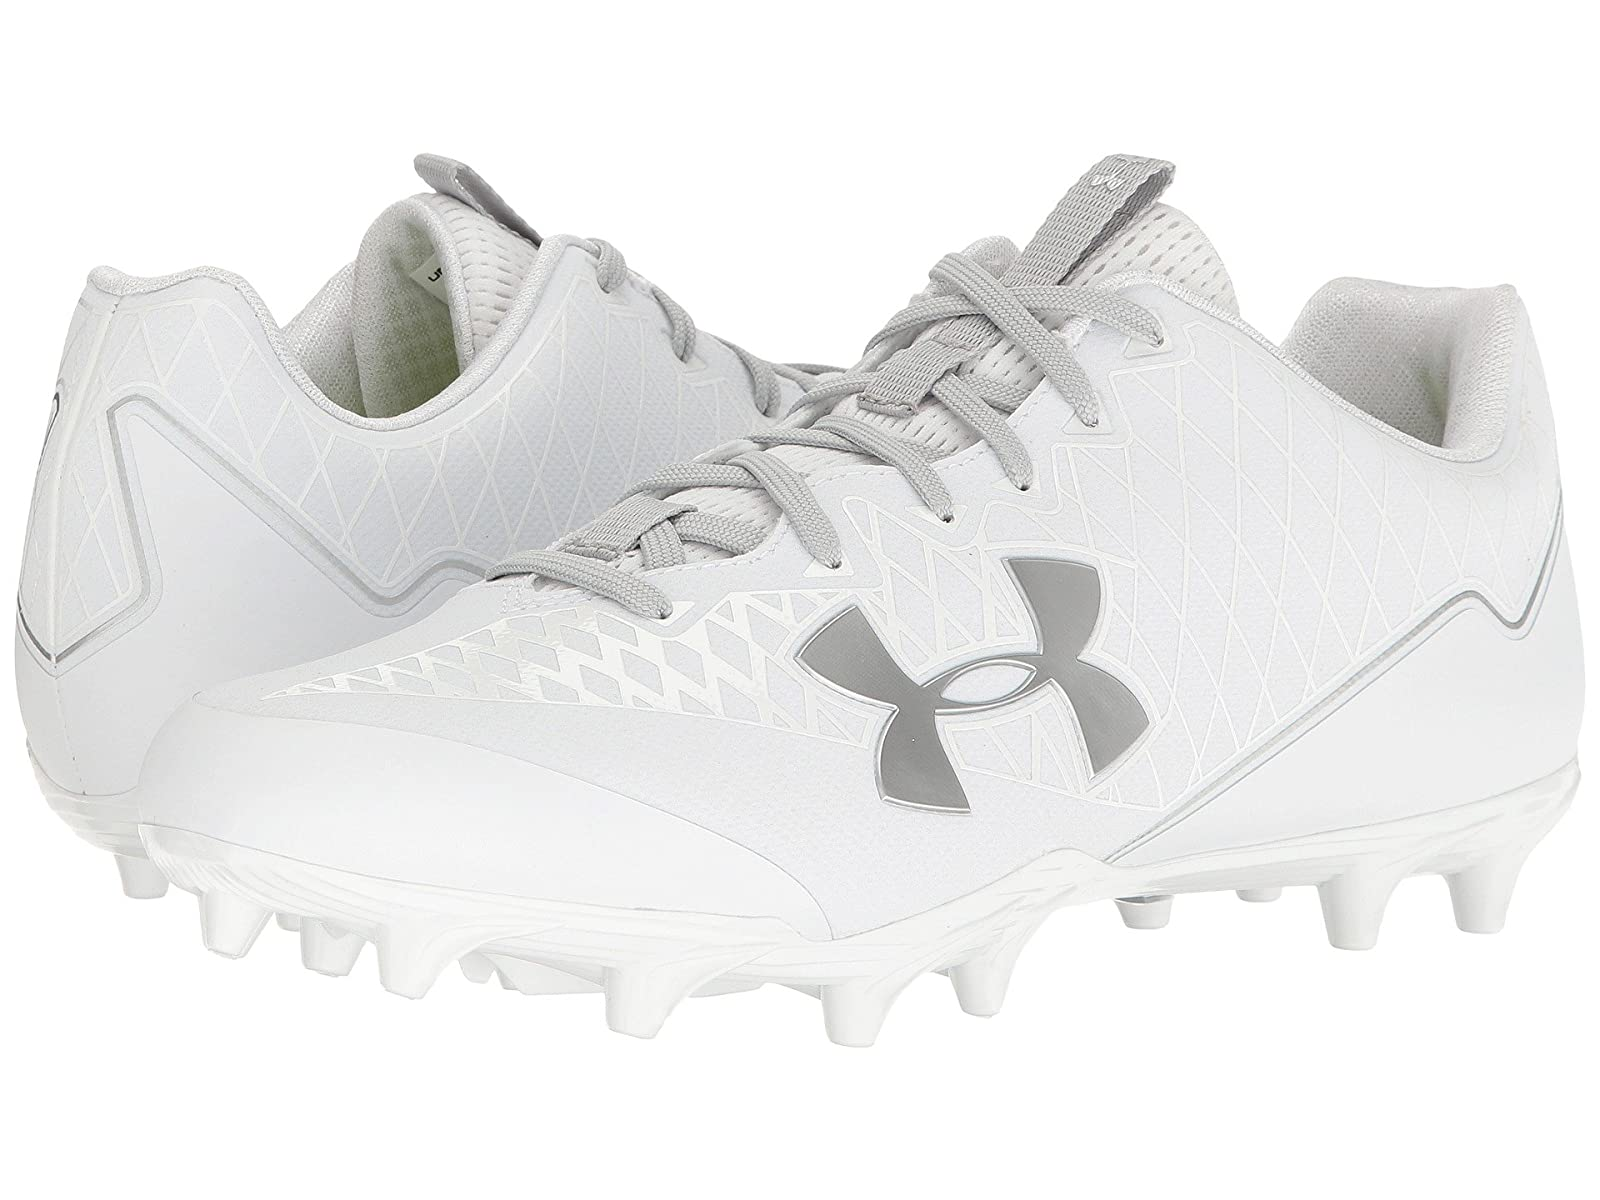 Under Armour UA Nitro Select Low MCCheap and distinctive eye-catching shoes